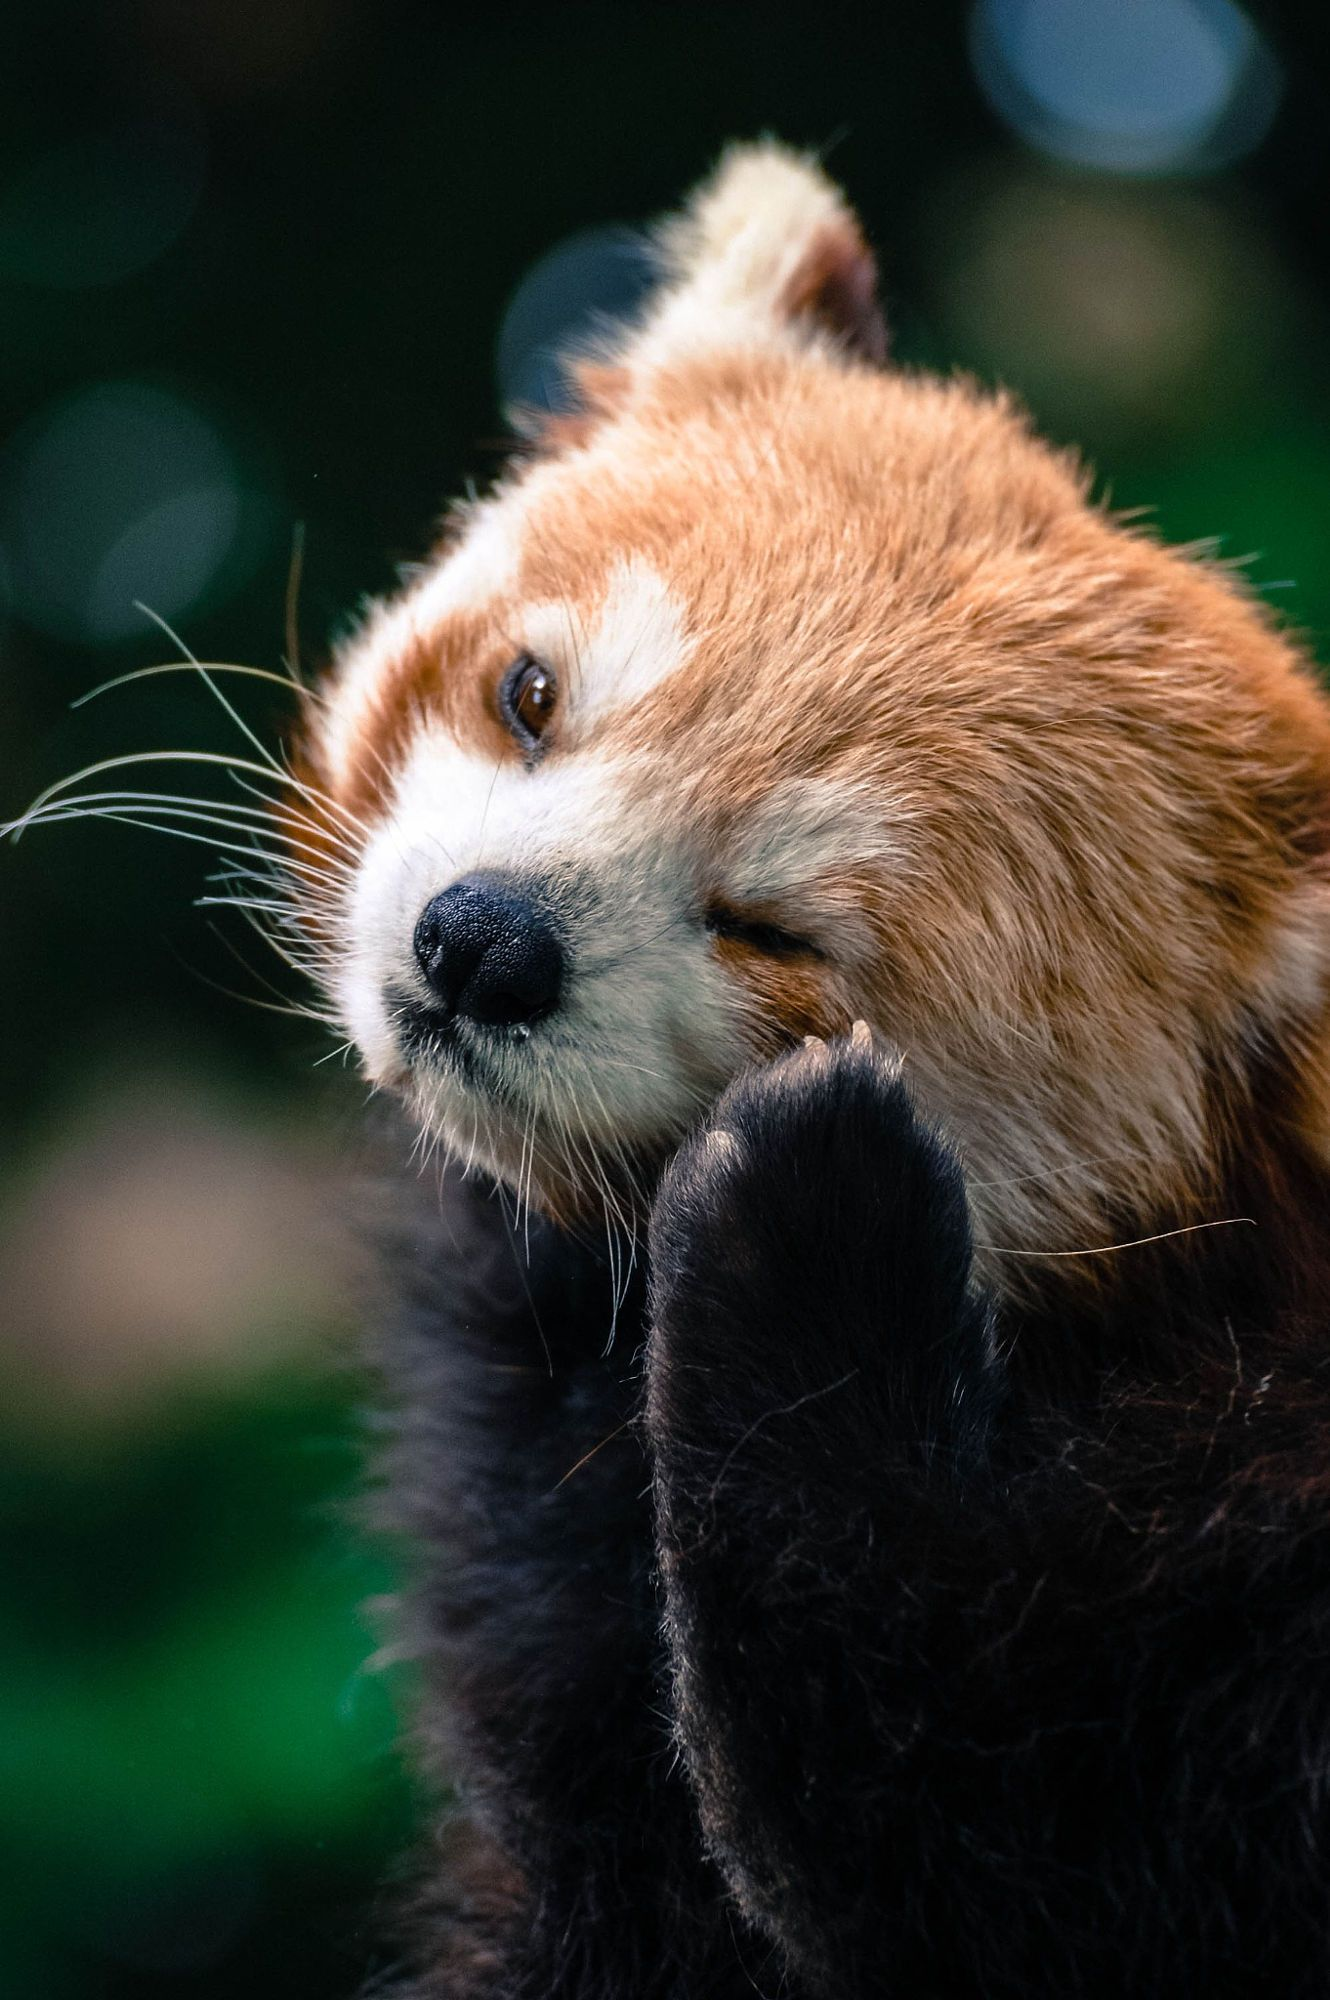 Red Panda By Aref Jdey On 500px Red Panda Cute Red Panda